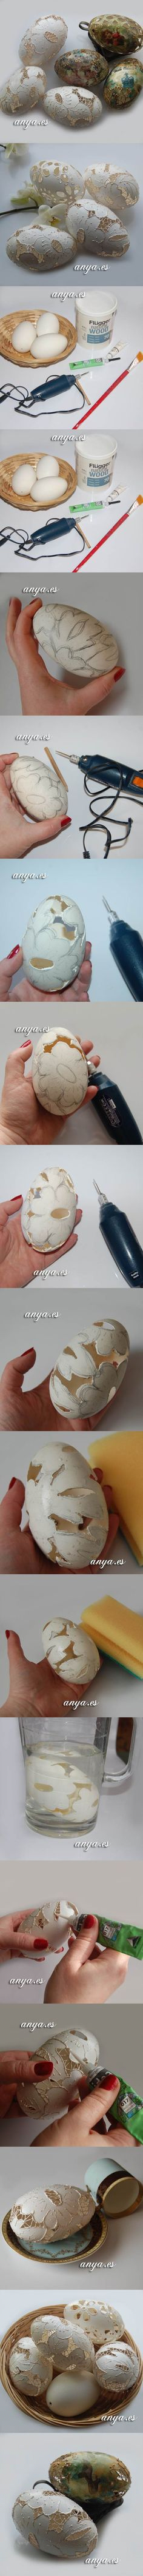 DIY Carved Lace Easter Eggs | iCreativeIdeas.com Like Us on Facebook ==> https://www.facebook.com/icreativeideas